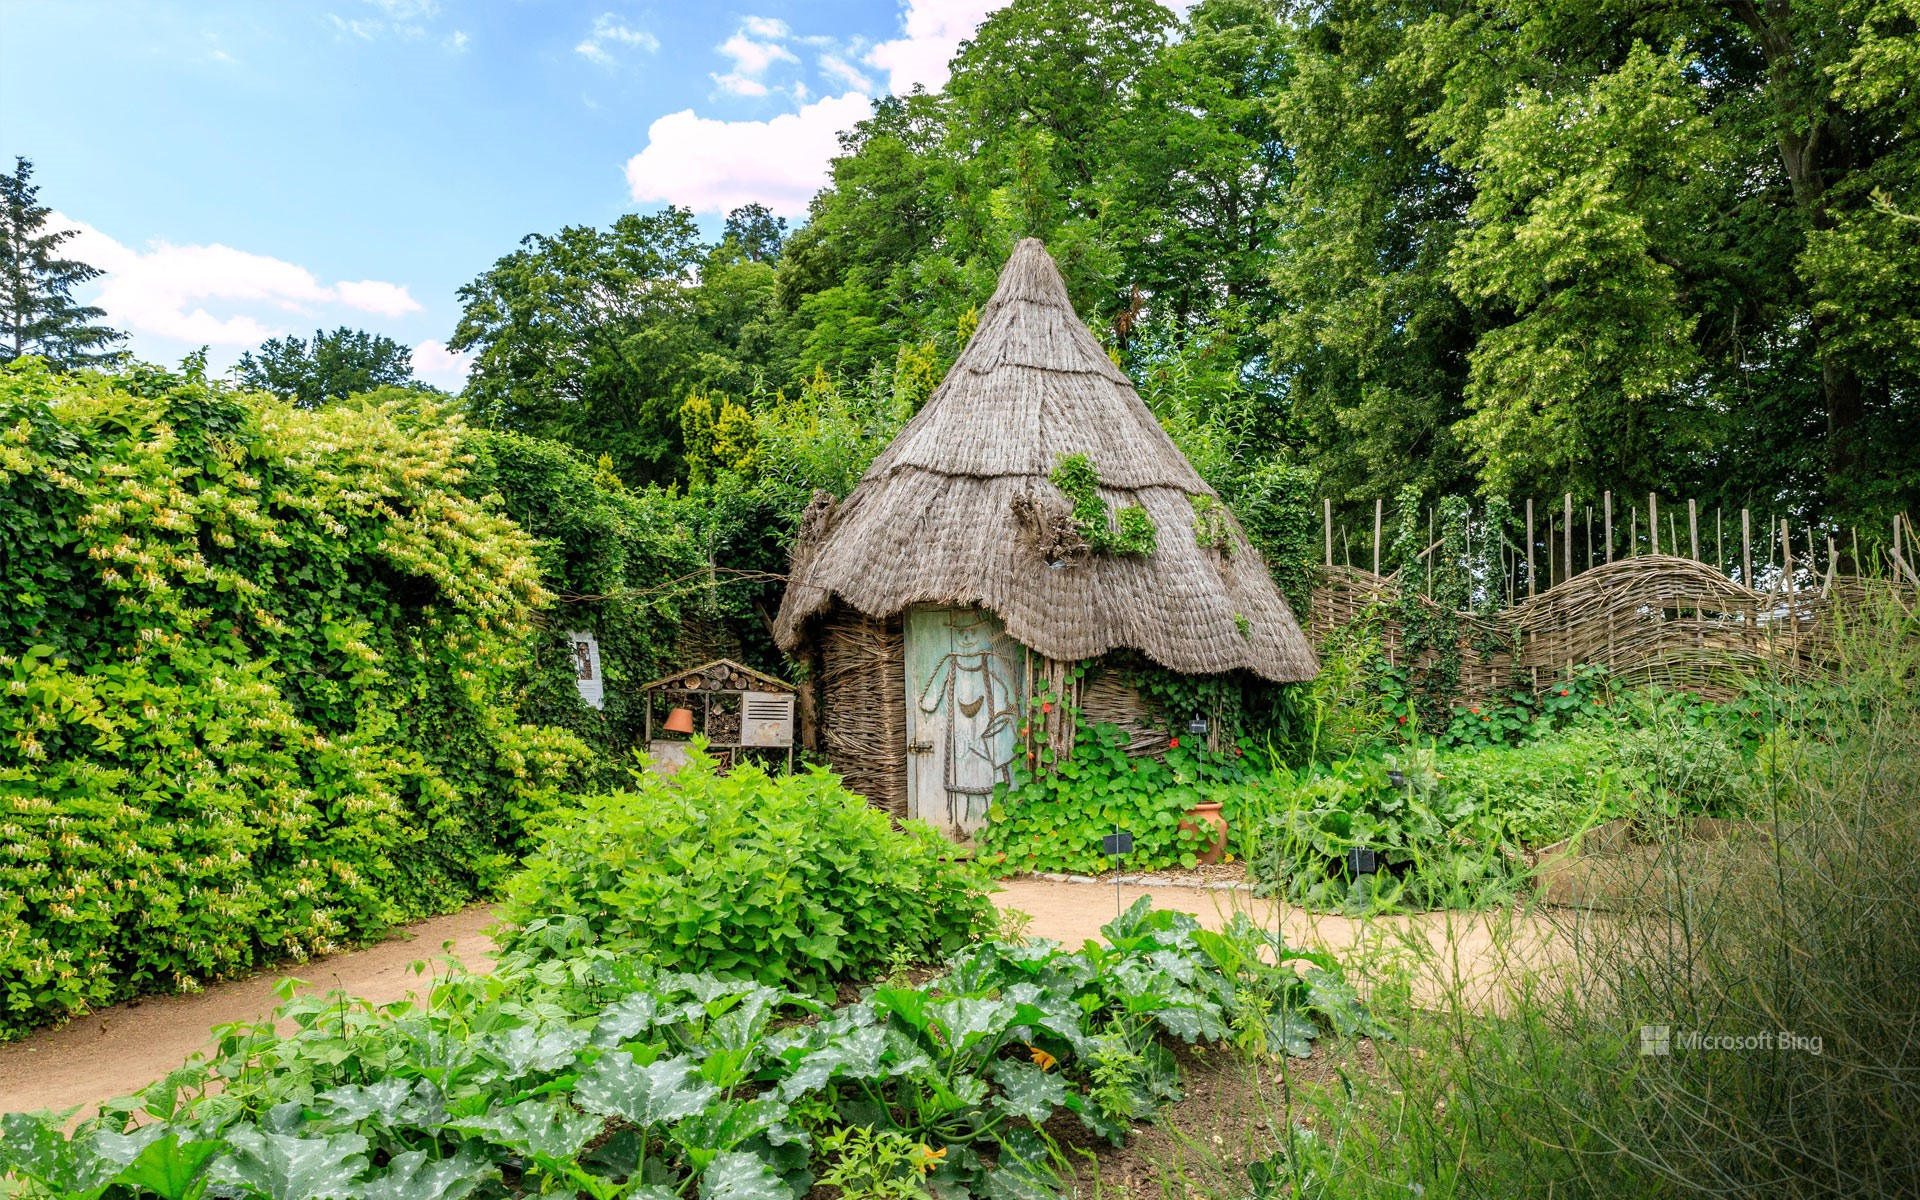 Wicker hut in the vegetable garden of the Parc floral de la Source, Orléans